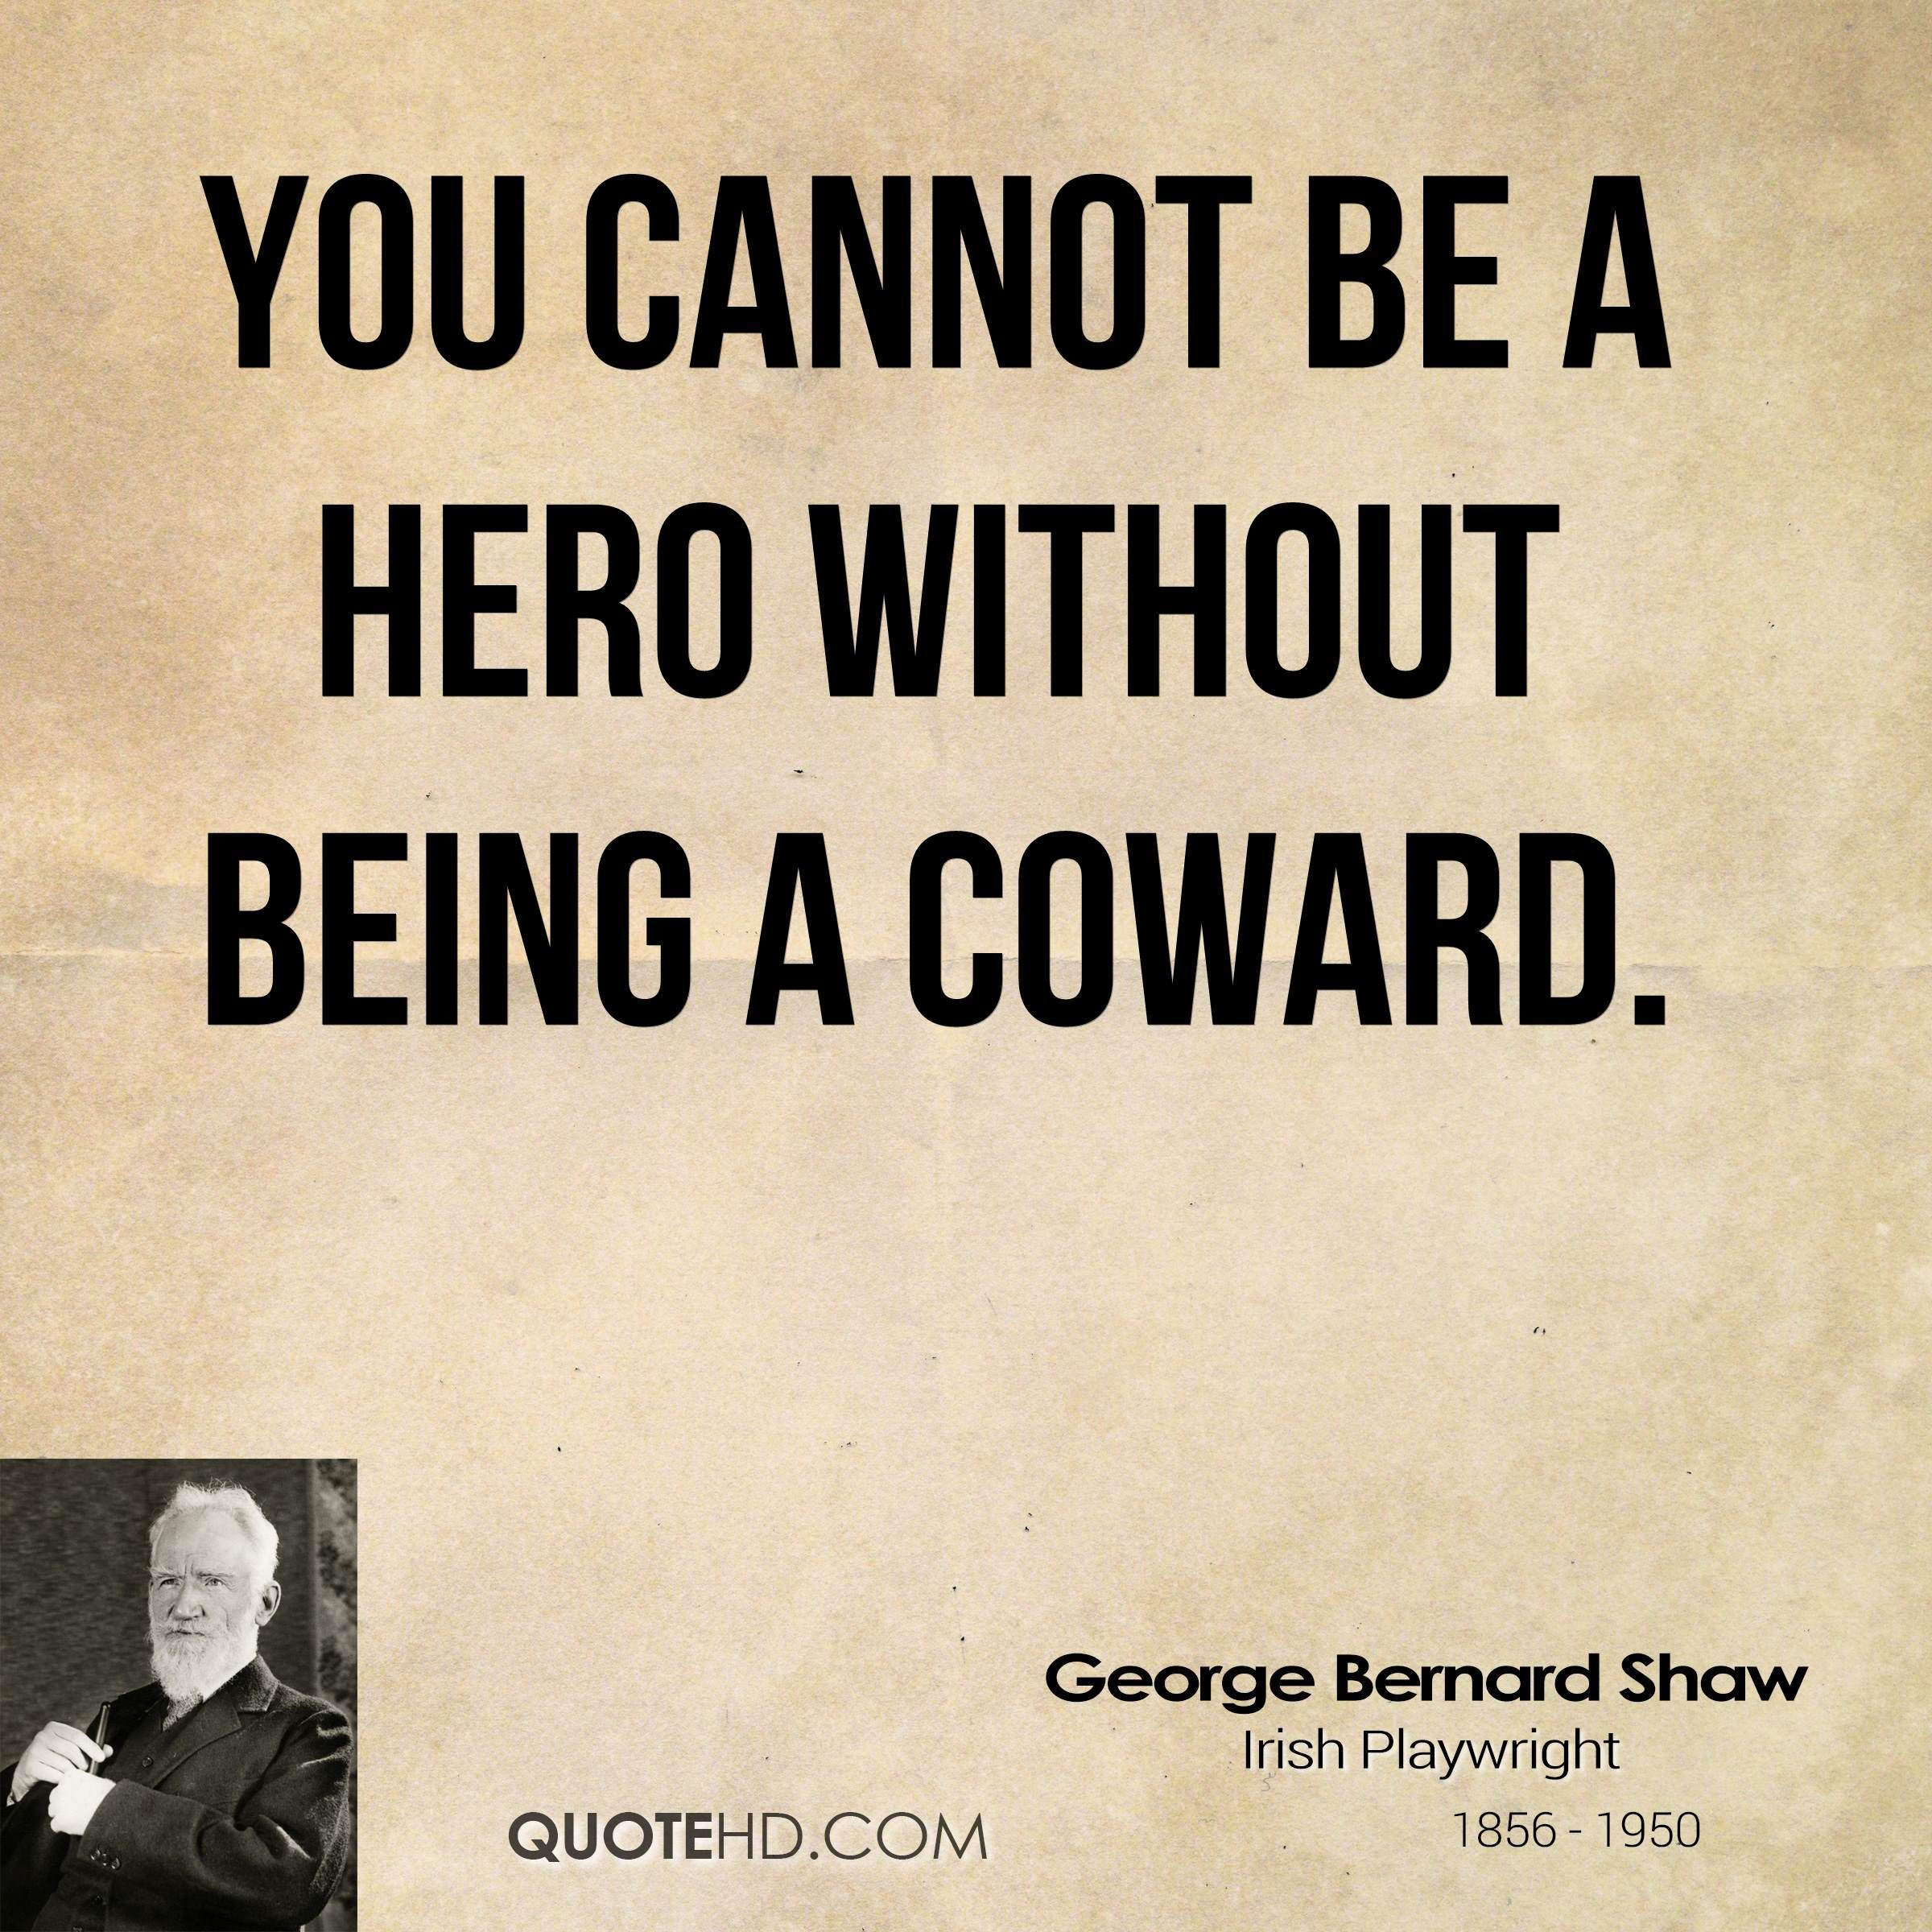 Beautiful Quotes About Not Being A Coward